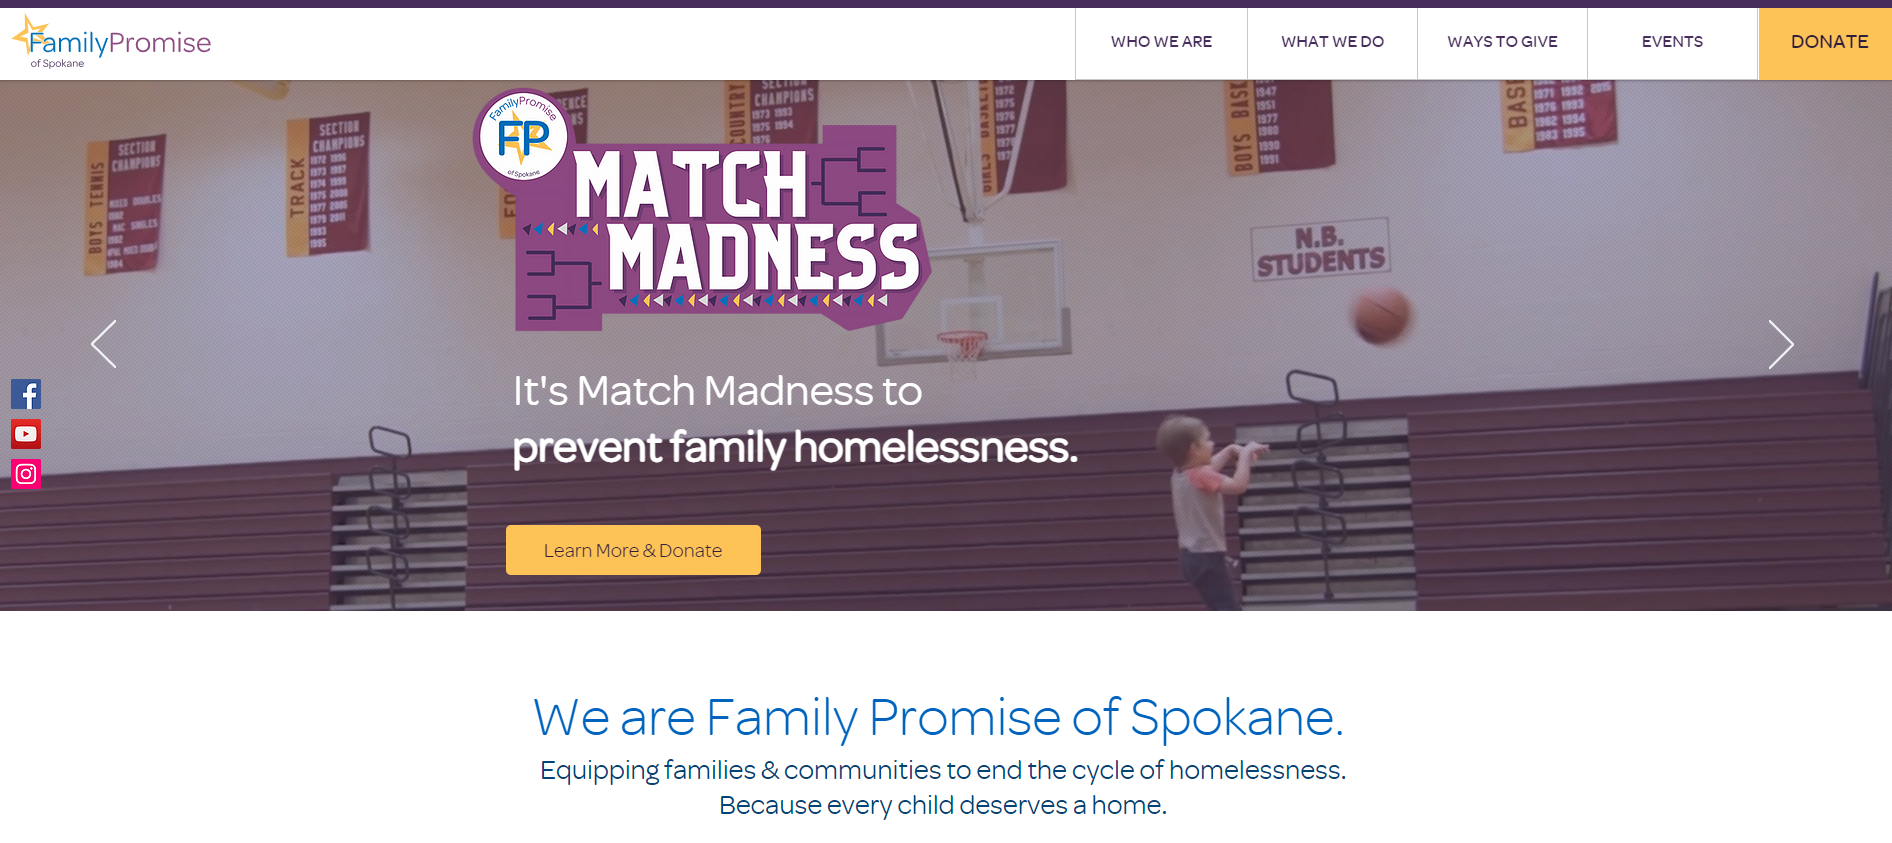 Family Promise of Spokane's homepage.